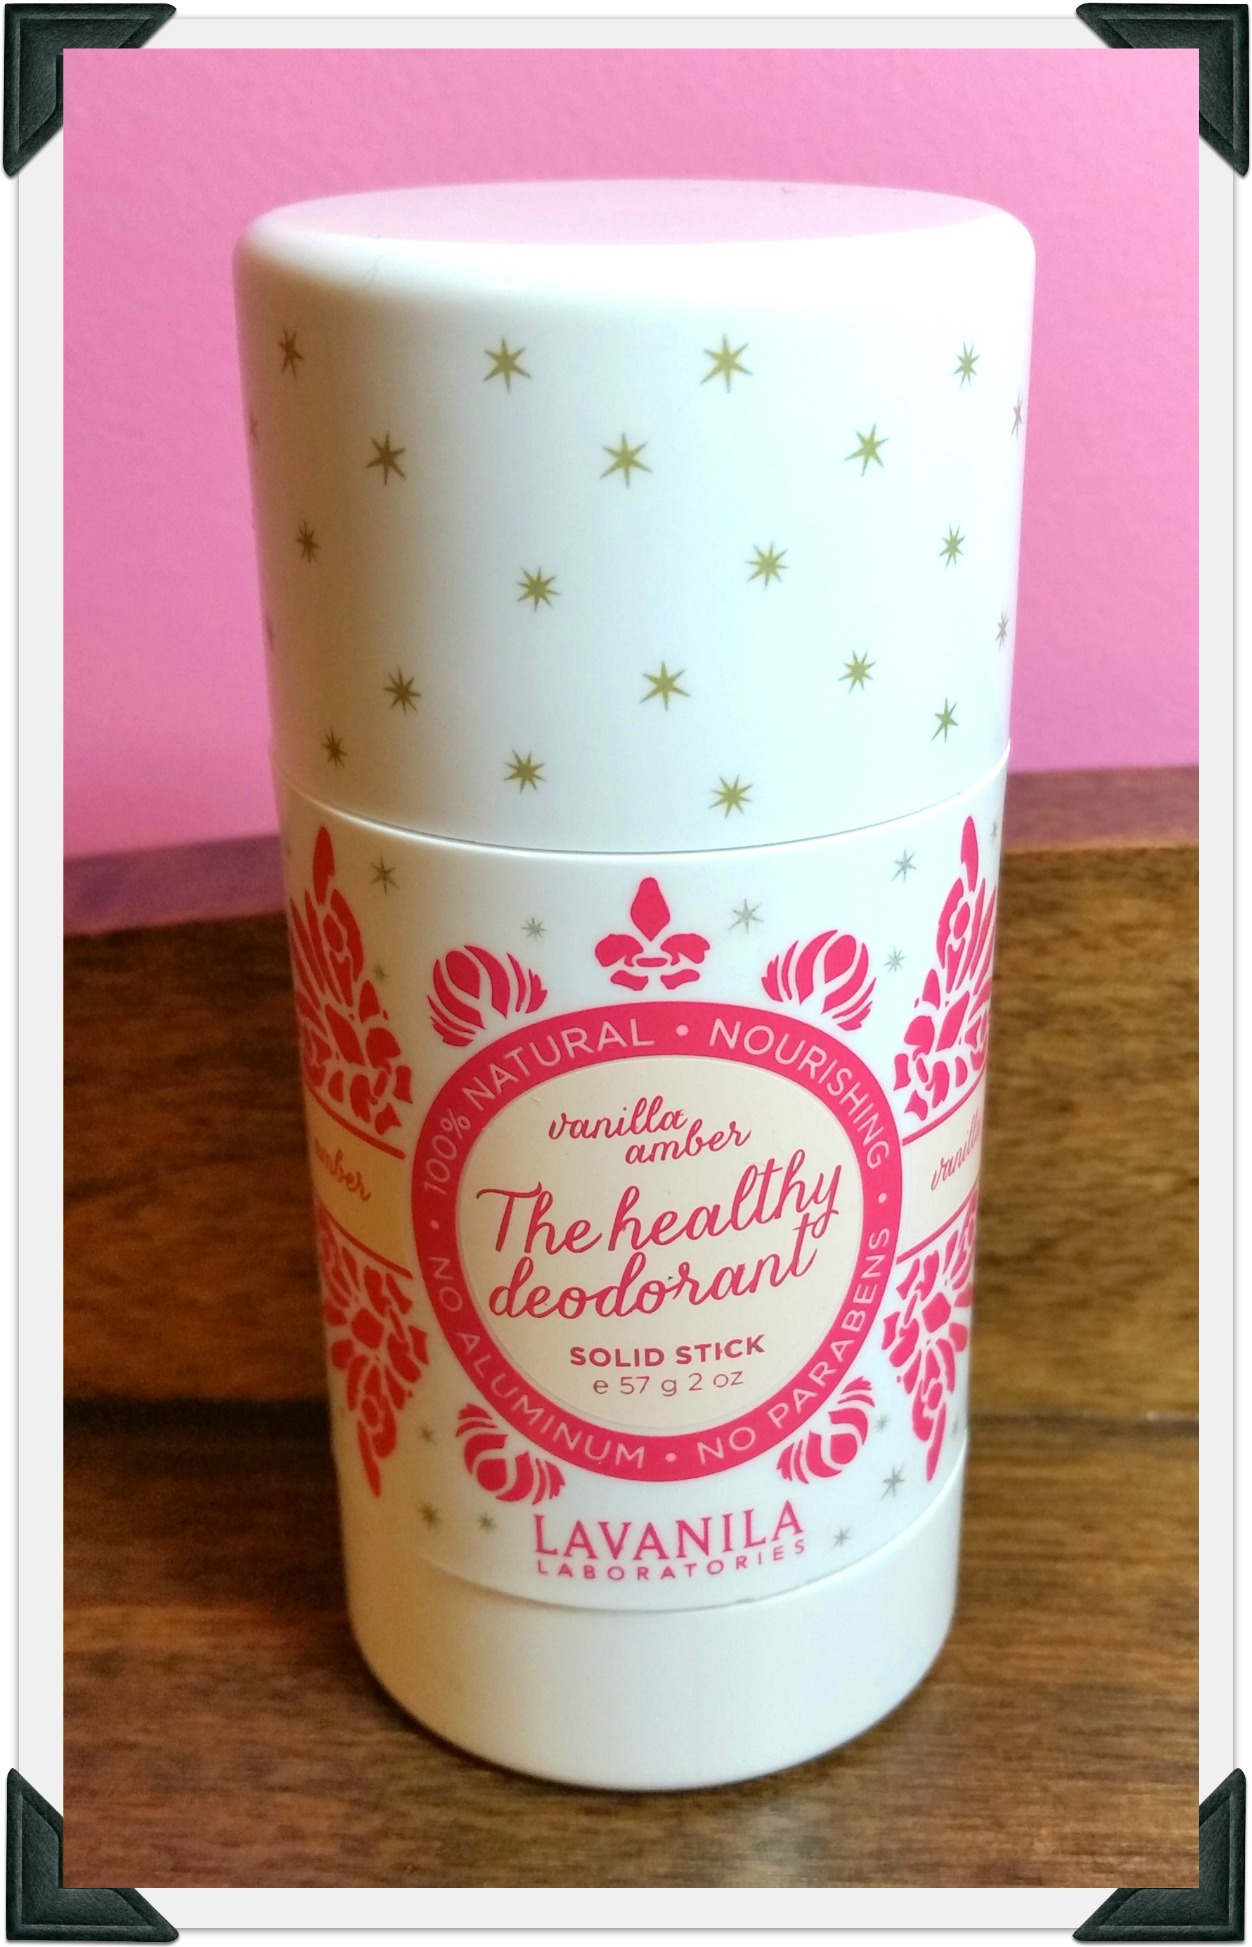 Lavanila Starlight Deo Trio #Review (By WhippedGreenGirl.com) New #Lavanila Deo kits - 3 full sizes! Save$ & get the best #organic deos!